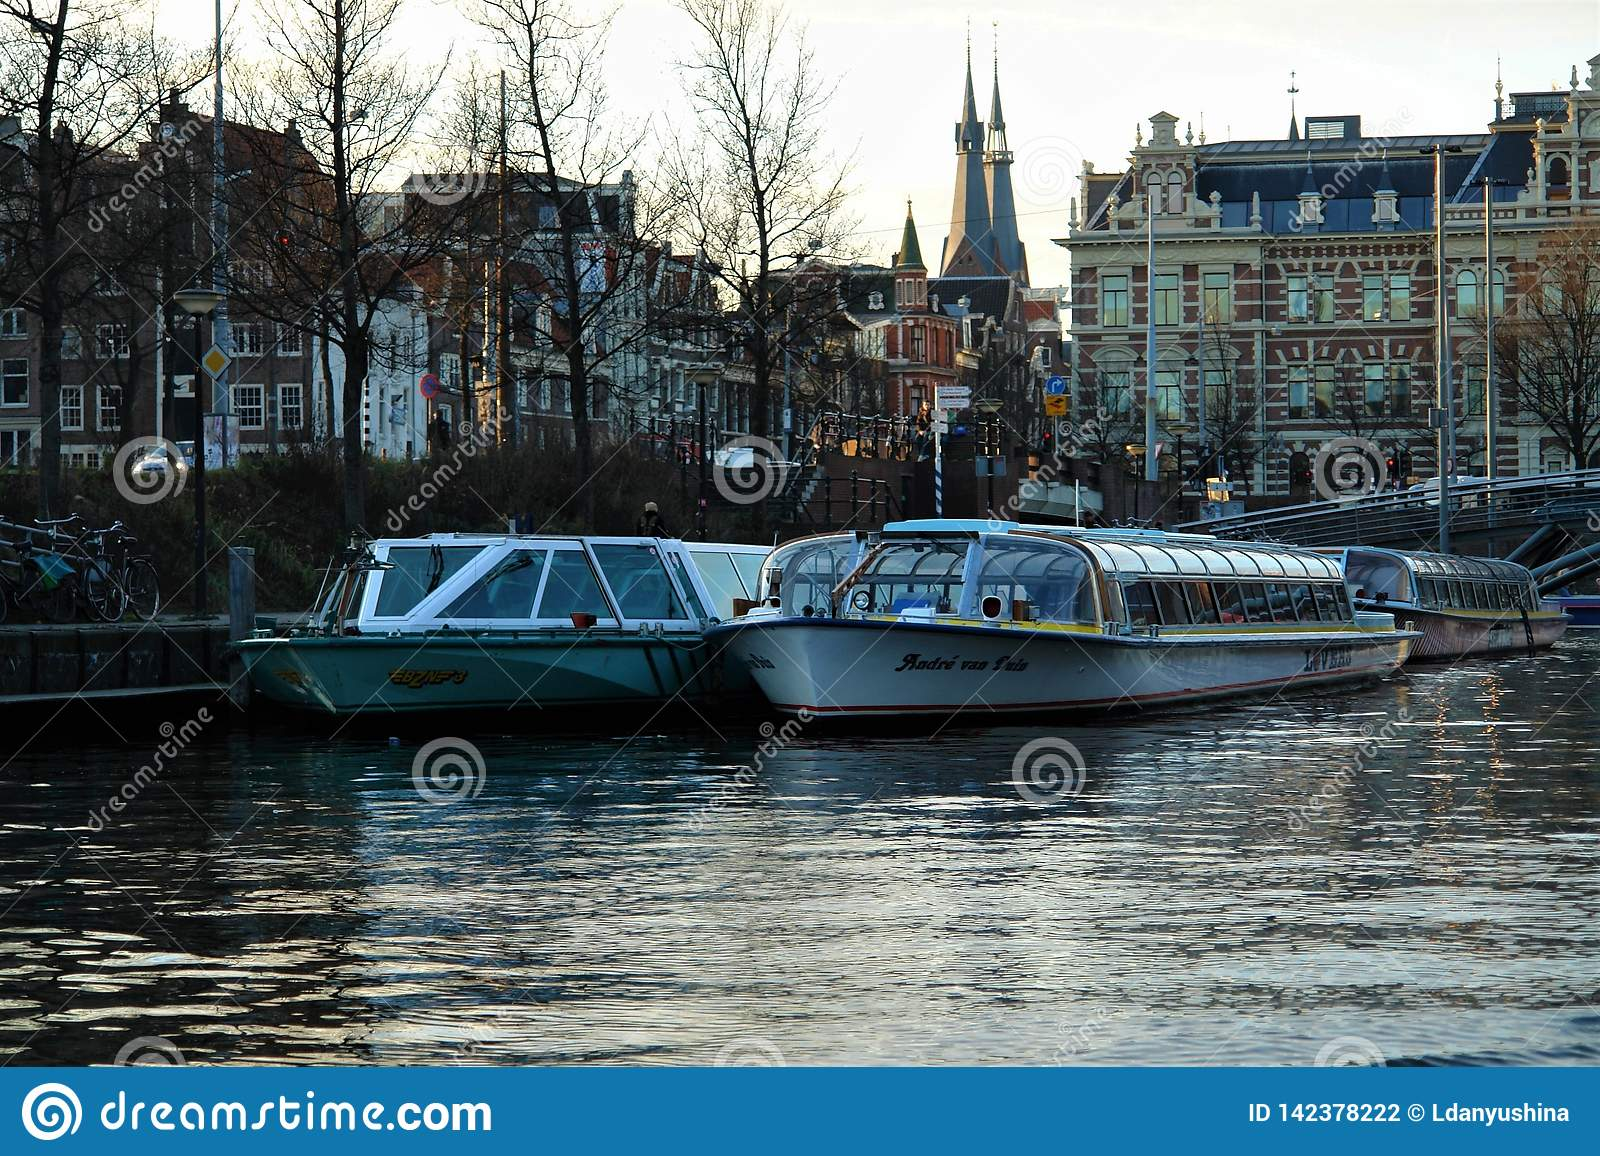 Morning in Amsterdam. Water street with boats on the pier, reflected in quiet water.